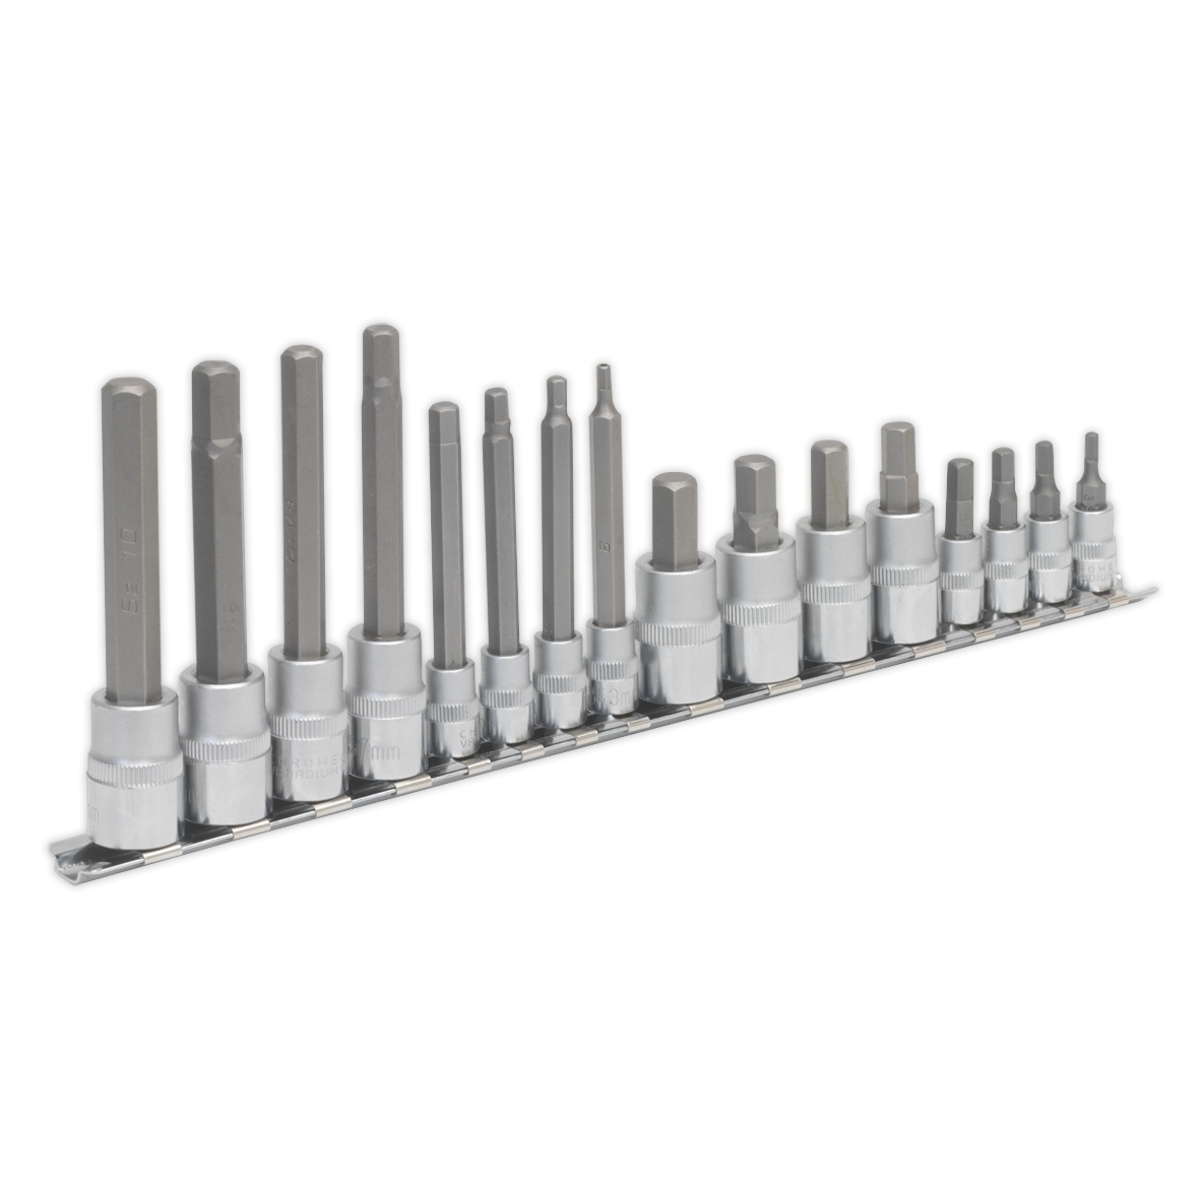 Stubby 3//8-inch and 1//2-inch Sq Drive Hex Socket Bit Set Silver Sealey AK6229 10 Piece 1//4-inch